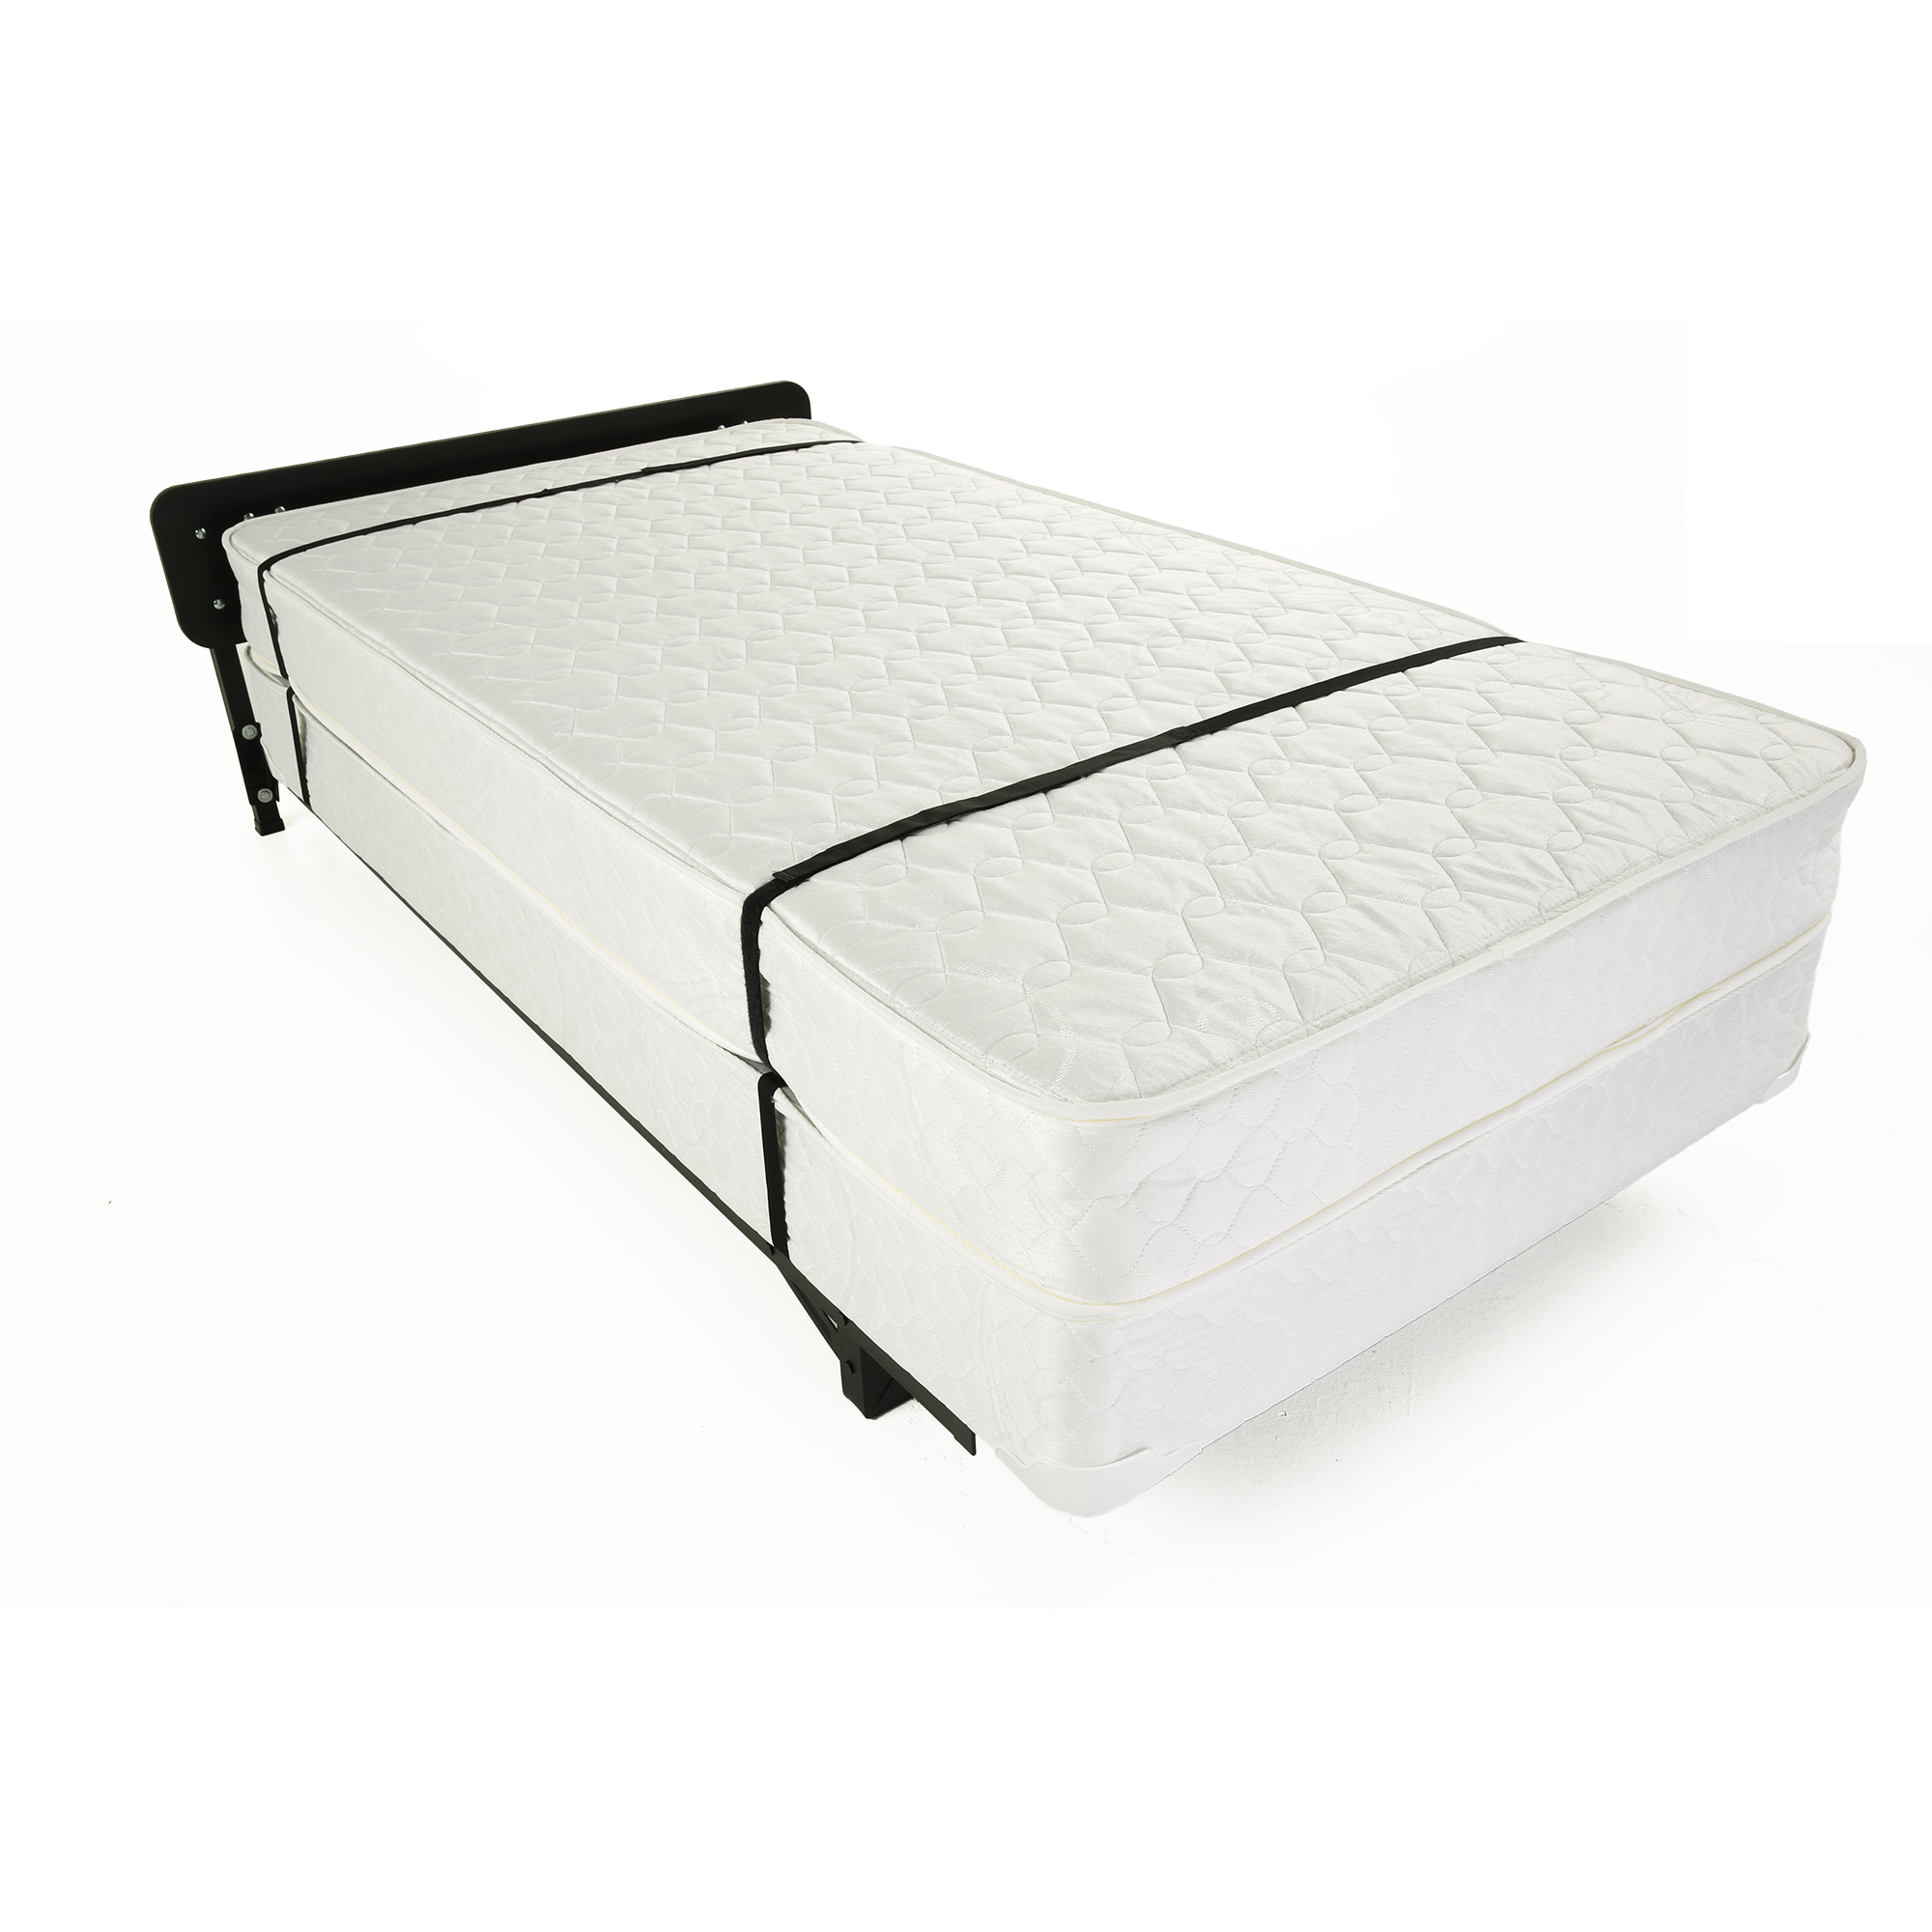 470070fashion Bed Group Hospitality 998 Stow Away Bed Frame With